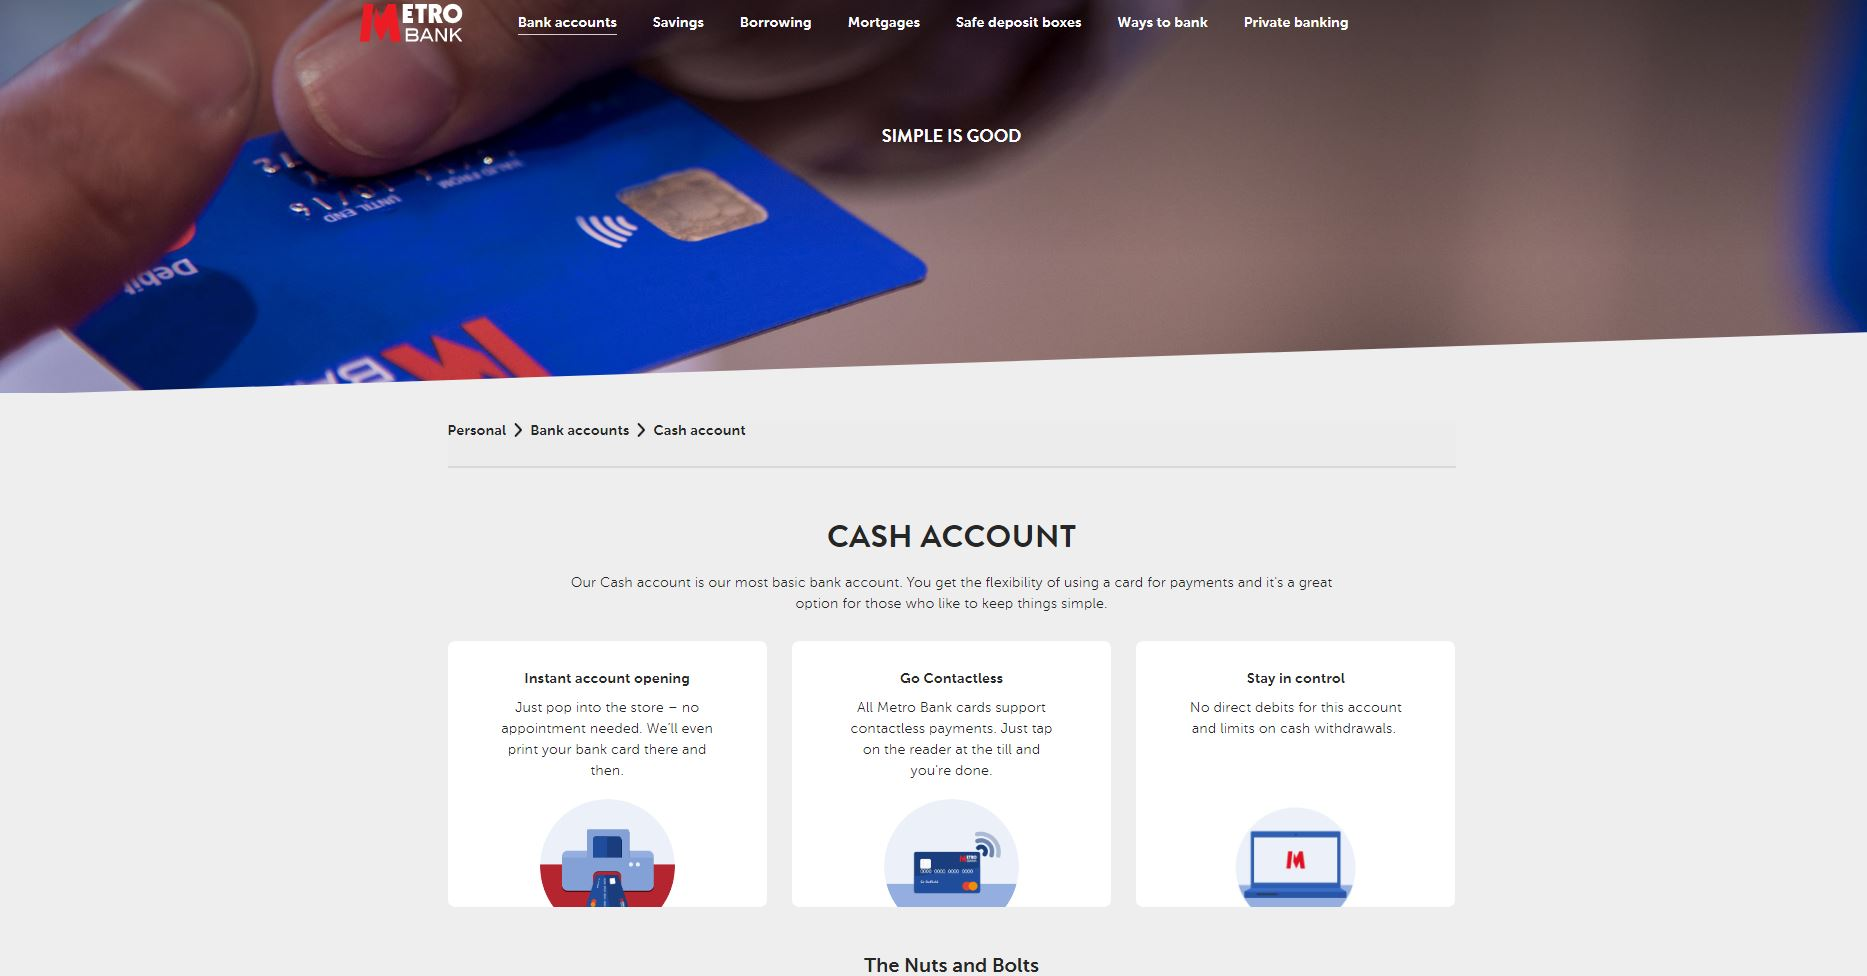 Cash account details